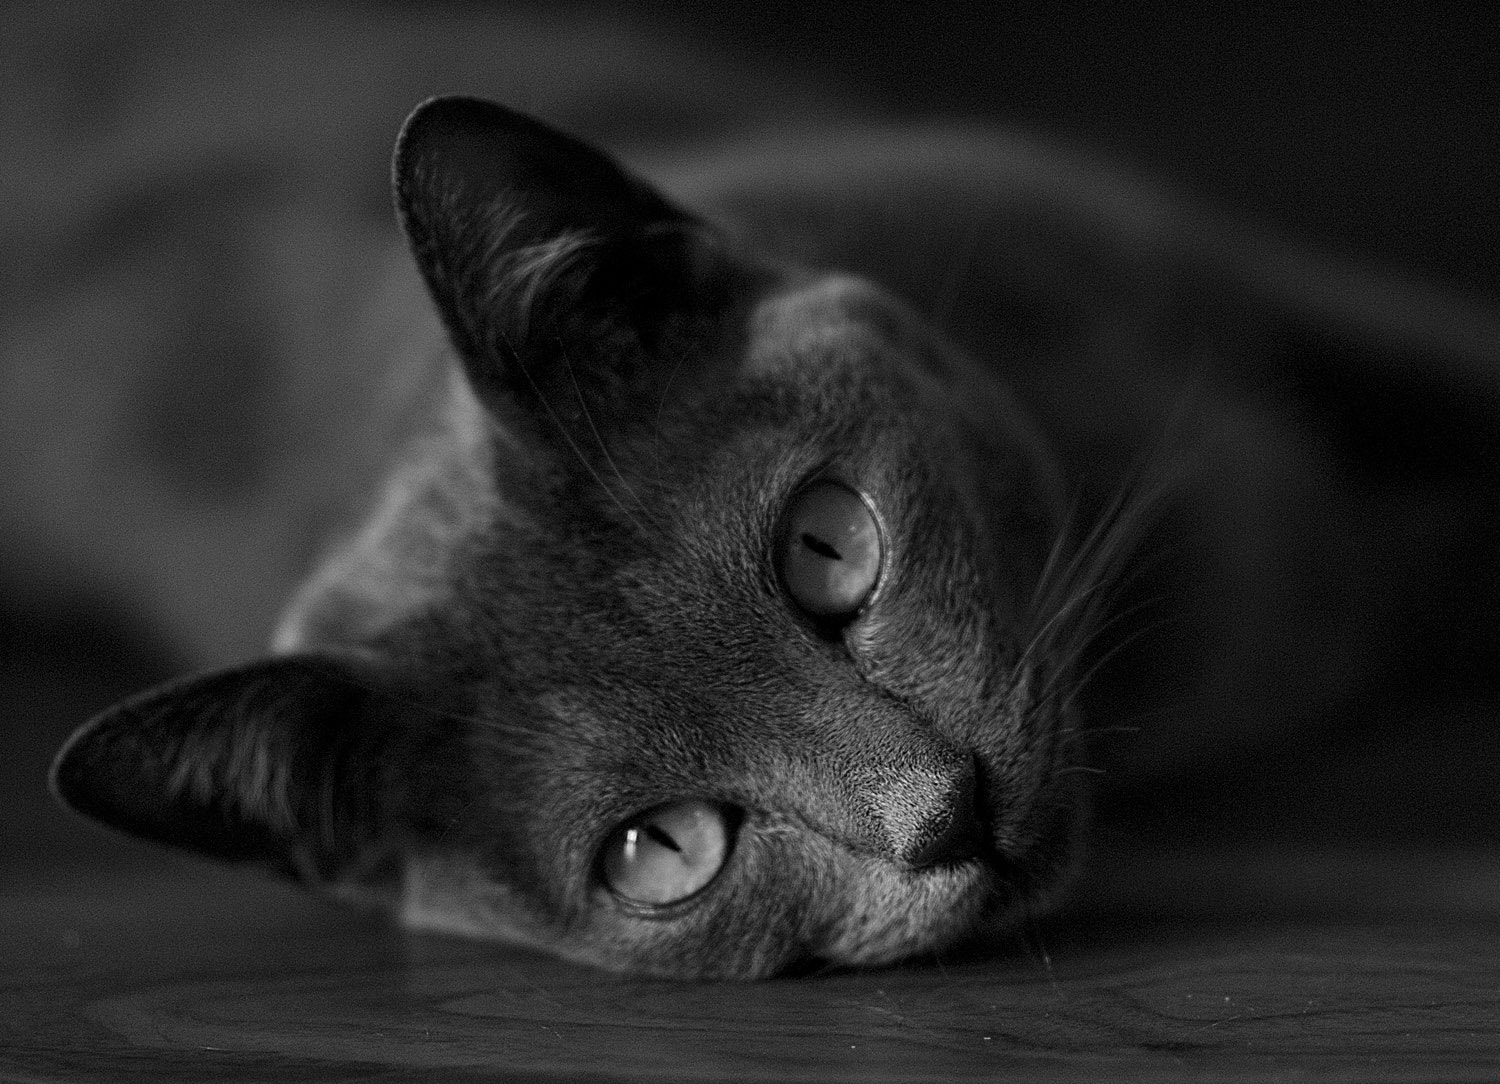 Photograph my friend the cat by Simon Norris on 500px